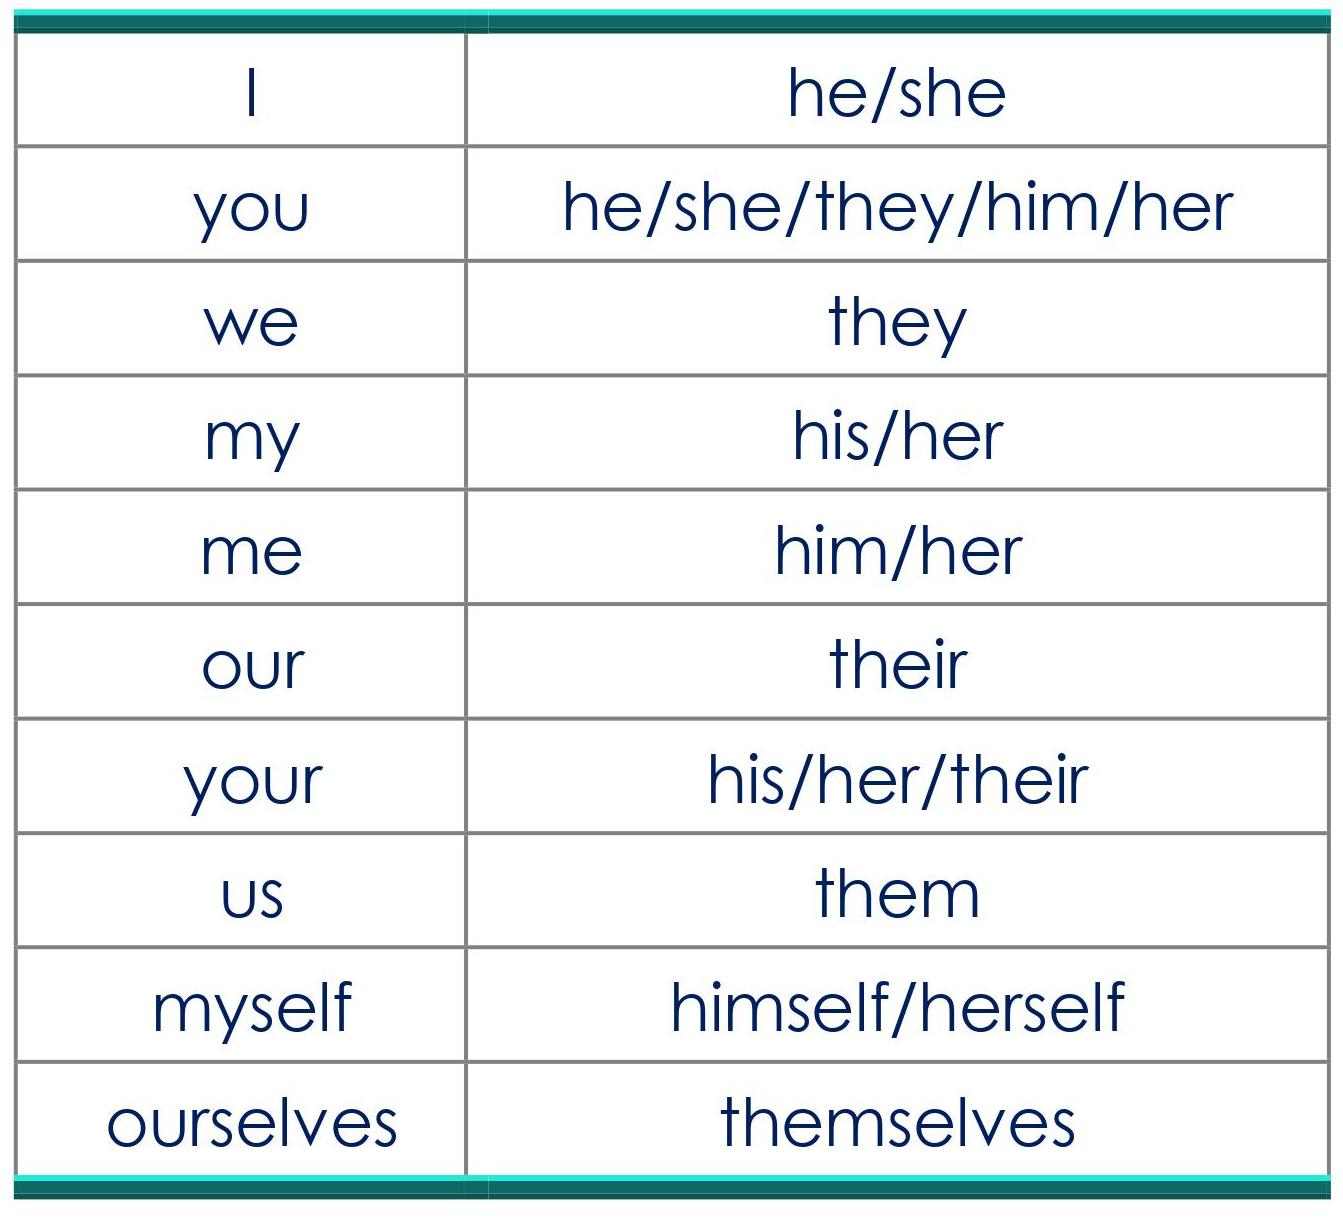 DIRECT INDIRECT SPEECH-CHANGE IN PRONOUNS